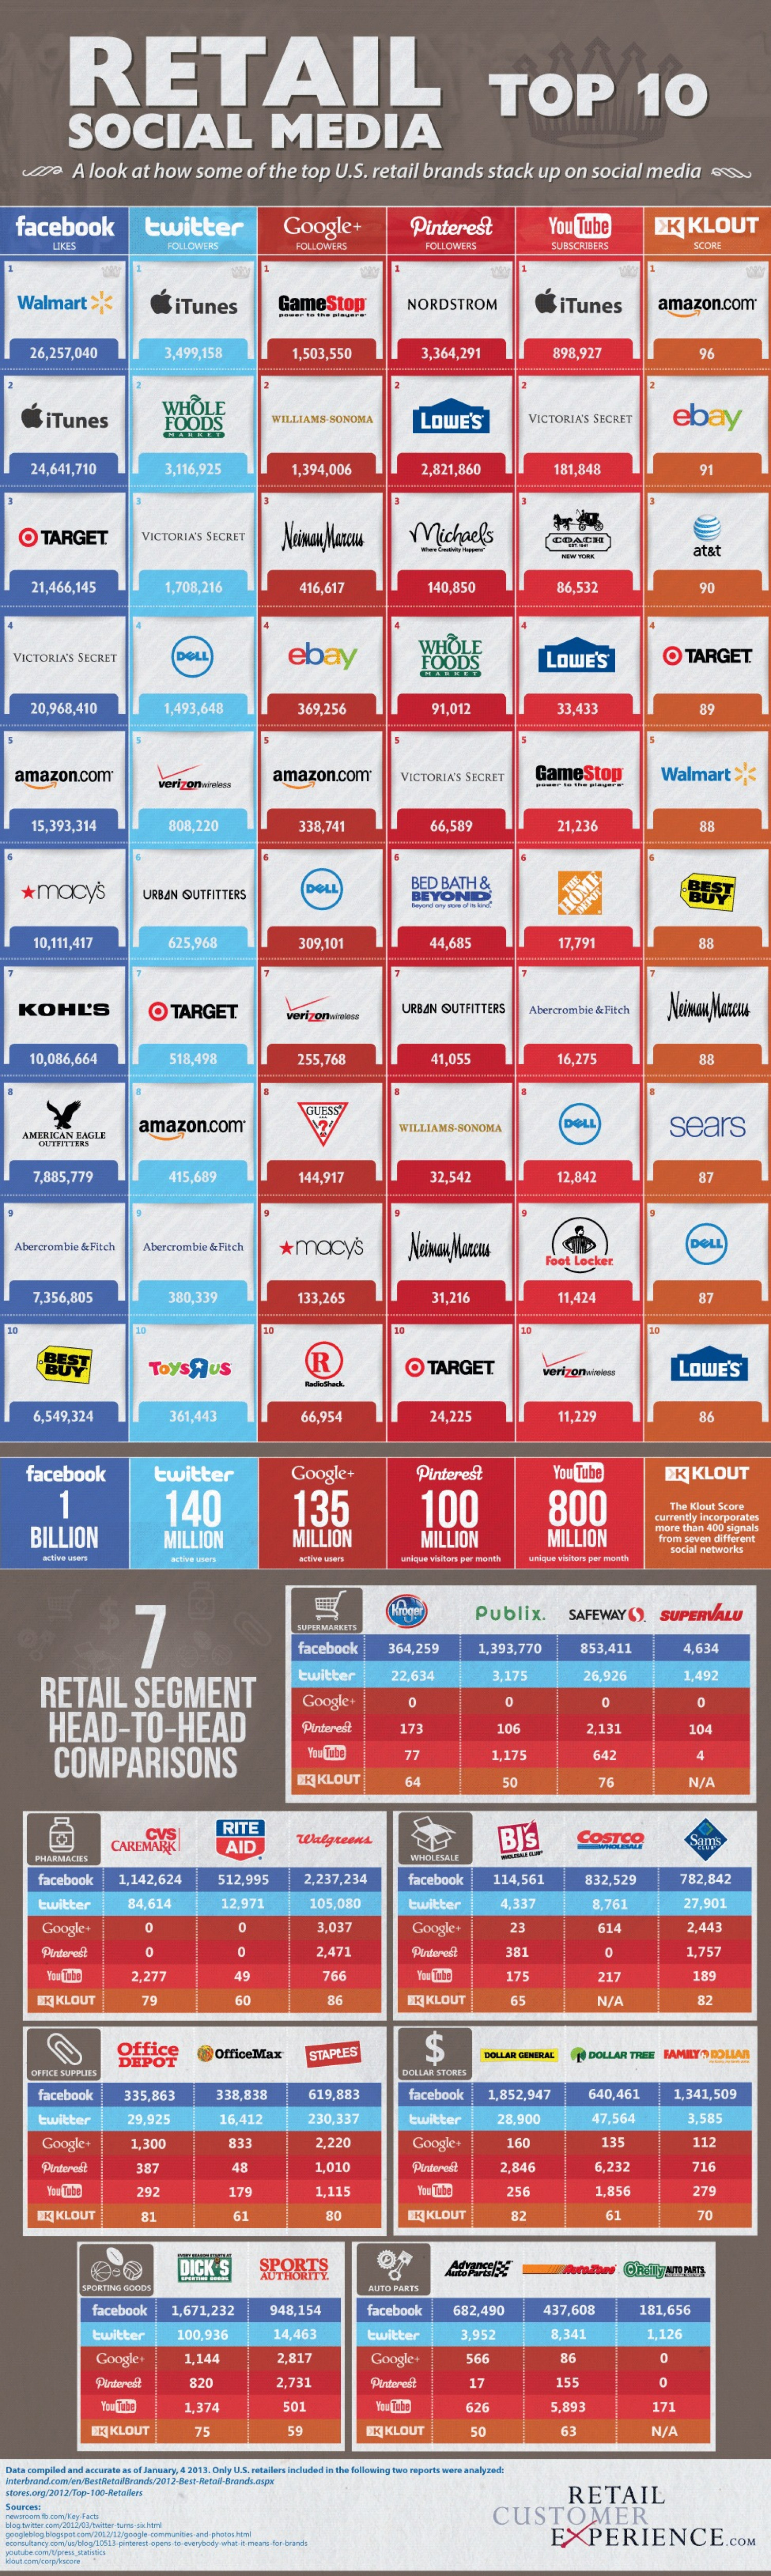 Retail Social Media Top 10 Infographic